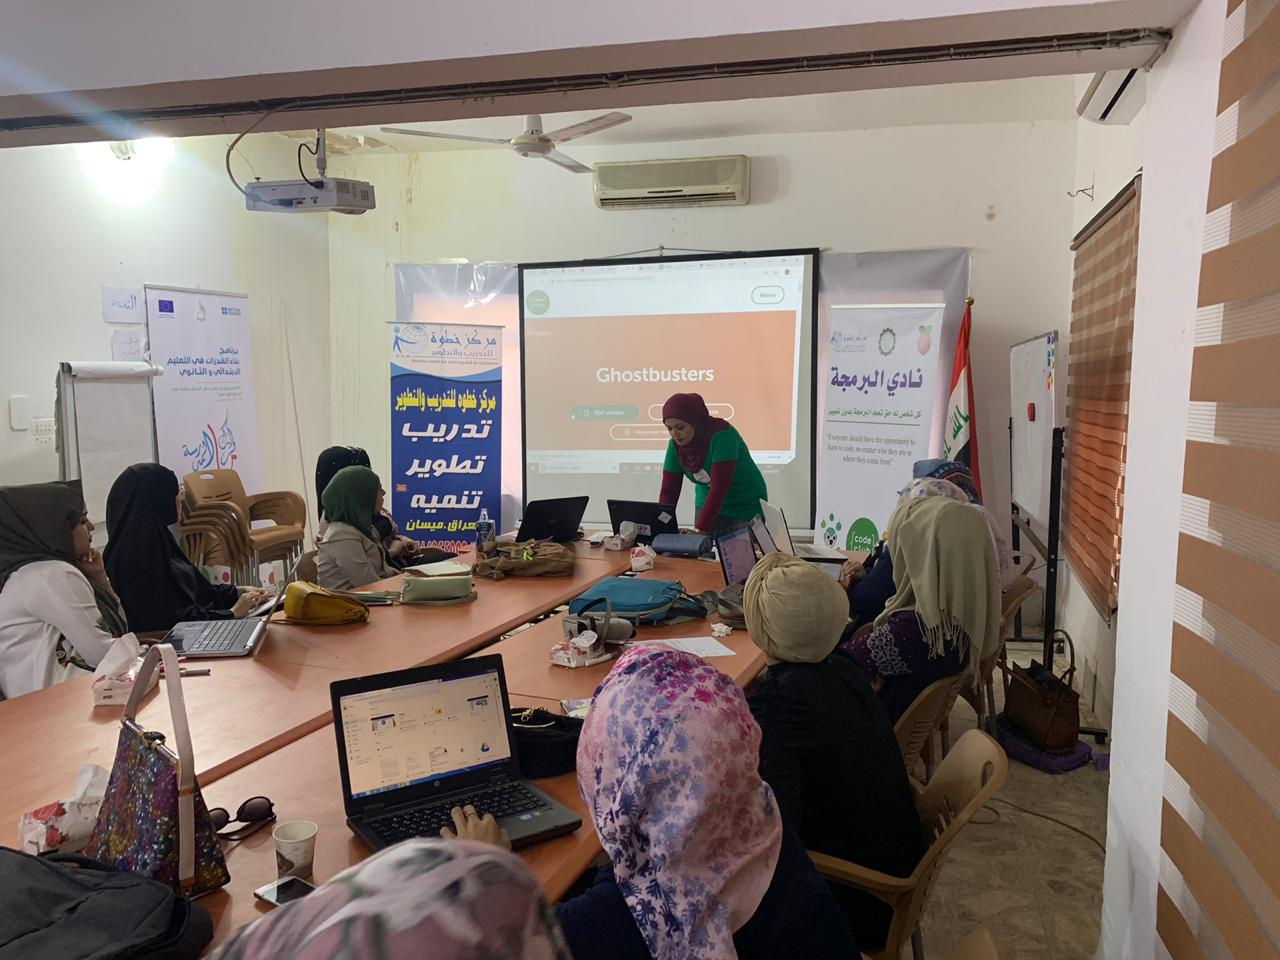 Nadia at the front of the classroom, training a group of female volunteers.